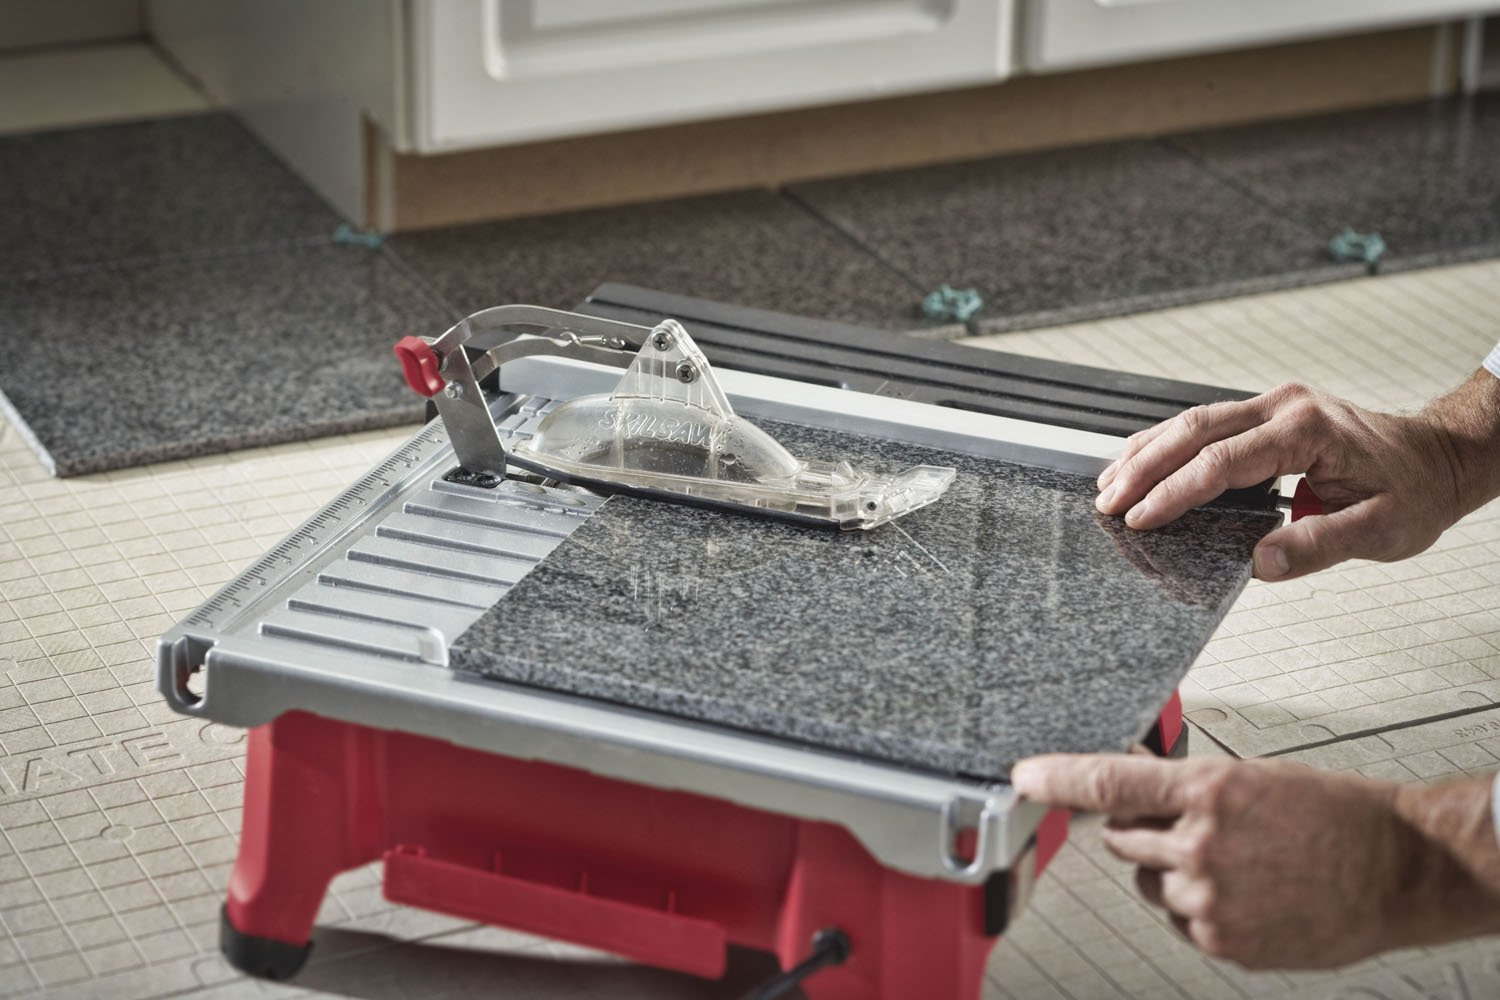 Tile saw the tile home guide they have quite a few best selling models that are budget friendly and make a really good wet tile saw for diy homeowners dailygadgetfo Choice Image